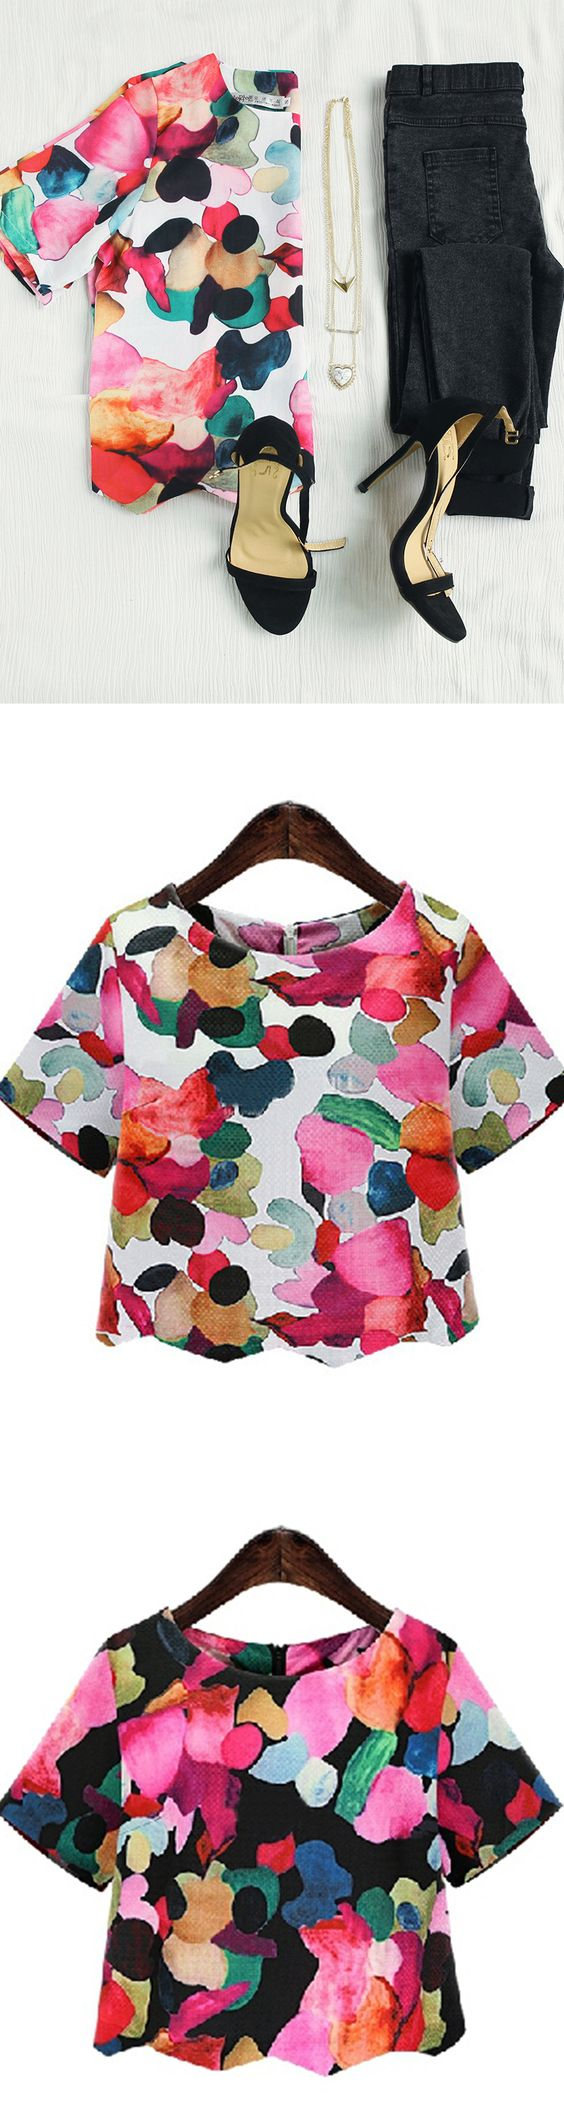 I super love this cute top,sweet floral print blouse would look awesome with dark skinny jeans and flats,must have it for Spring: